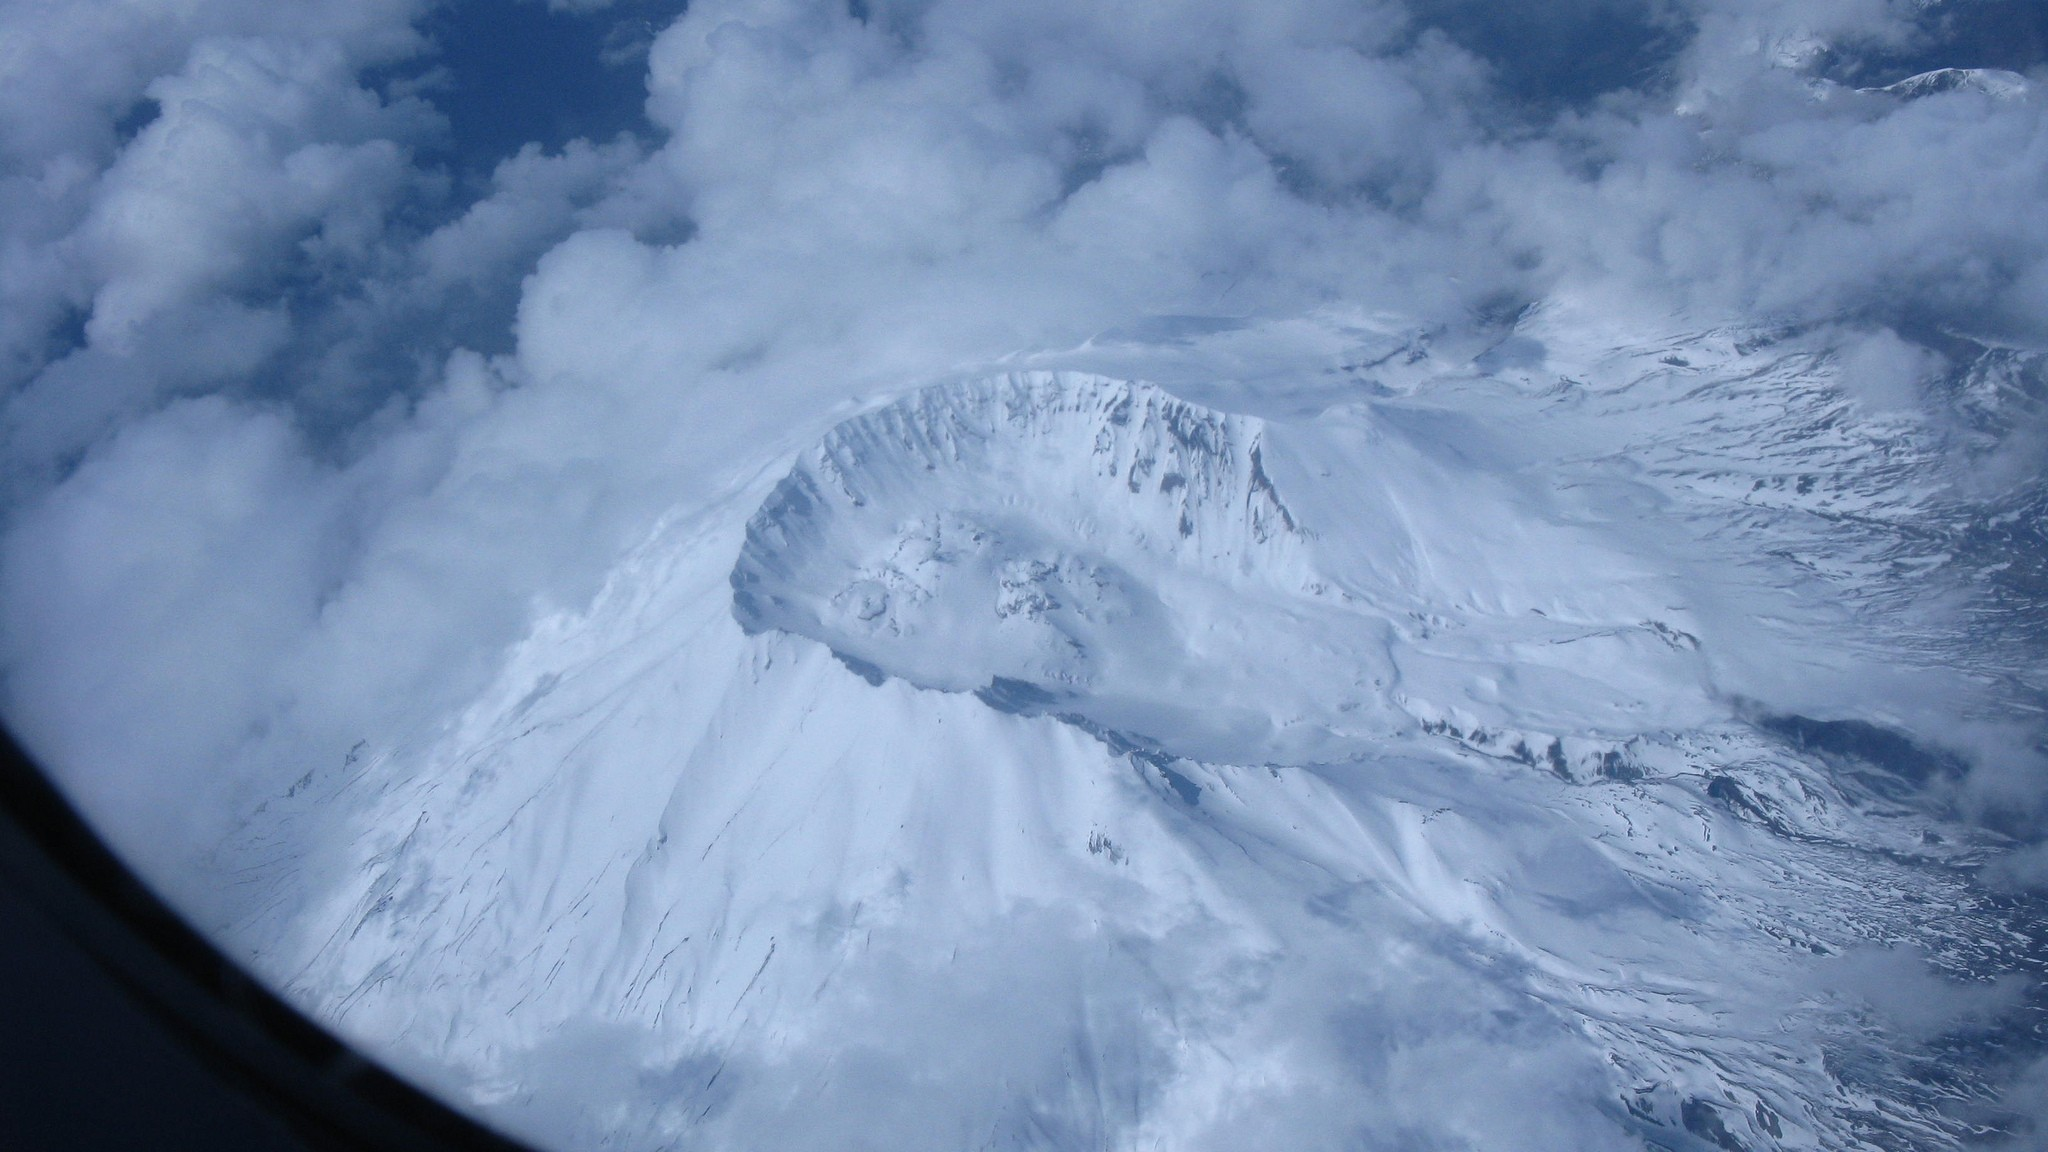 New Imagery Reveals That Mount St. Helens Is Sitting Atop a Small Sea of Magma